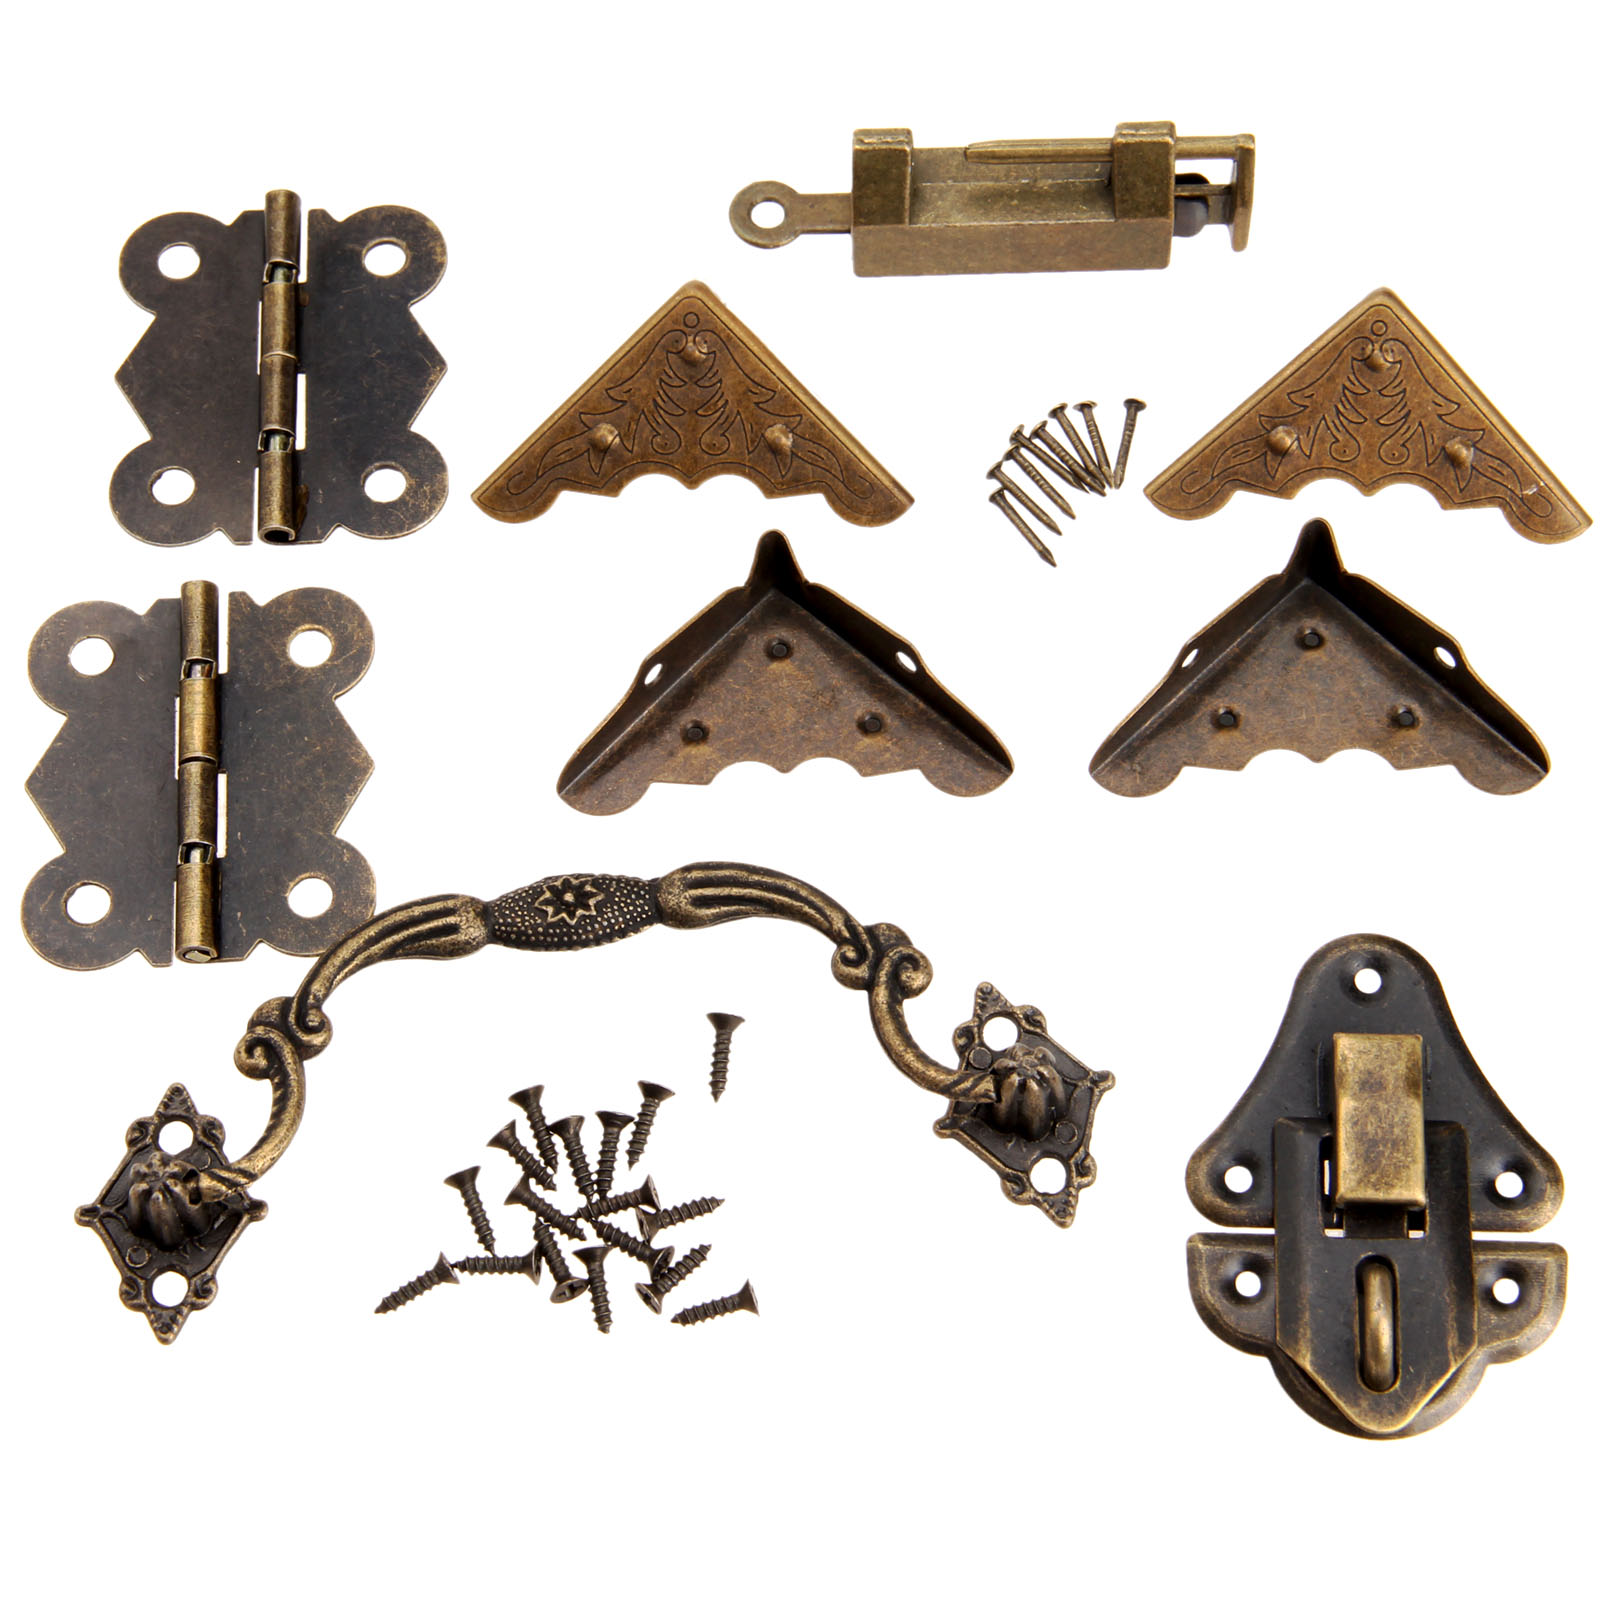 9Pcs/set Furniture Hardware Chinese Brass Hardware Antique Wooden Box Latch Hasp+Pull Handle+Hinges+Corner Protector+Old Lock